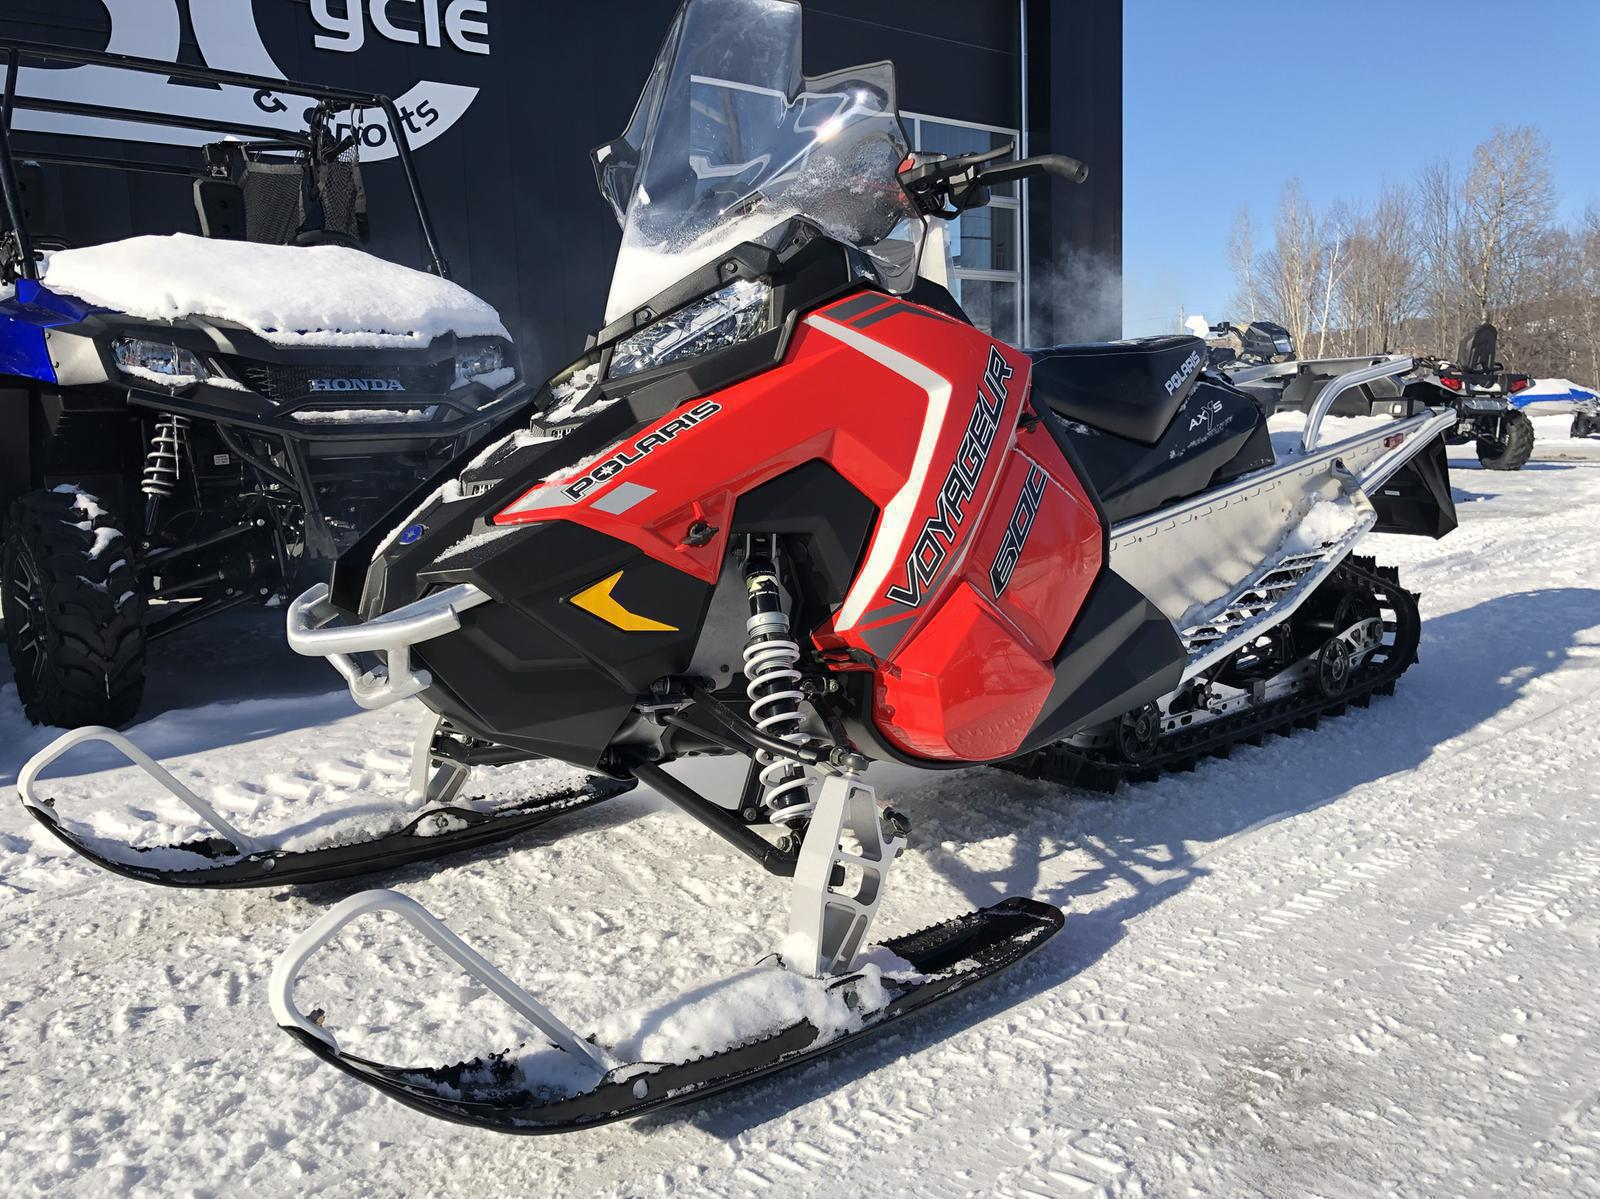 2018 Polaris Industries 600 Voyageur® 144 for sale in North